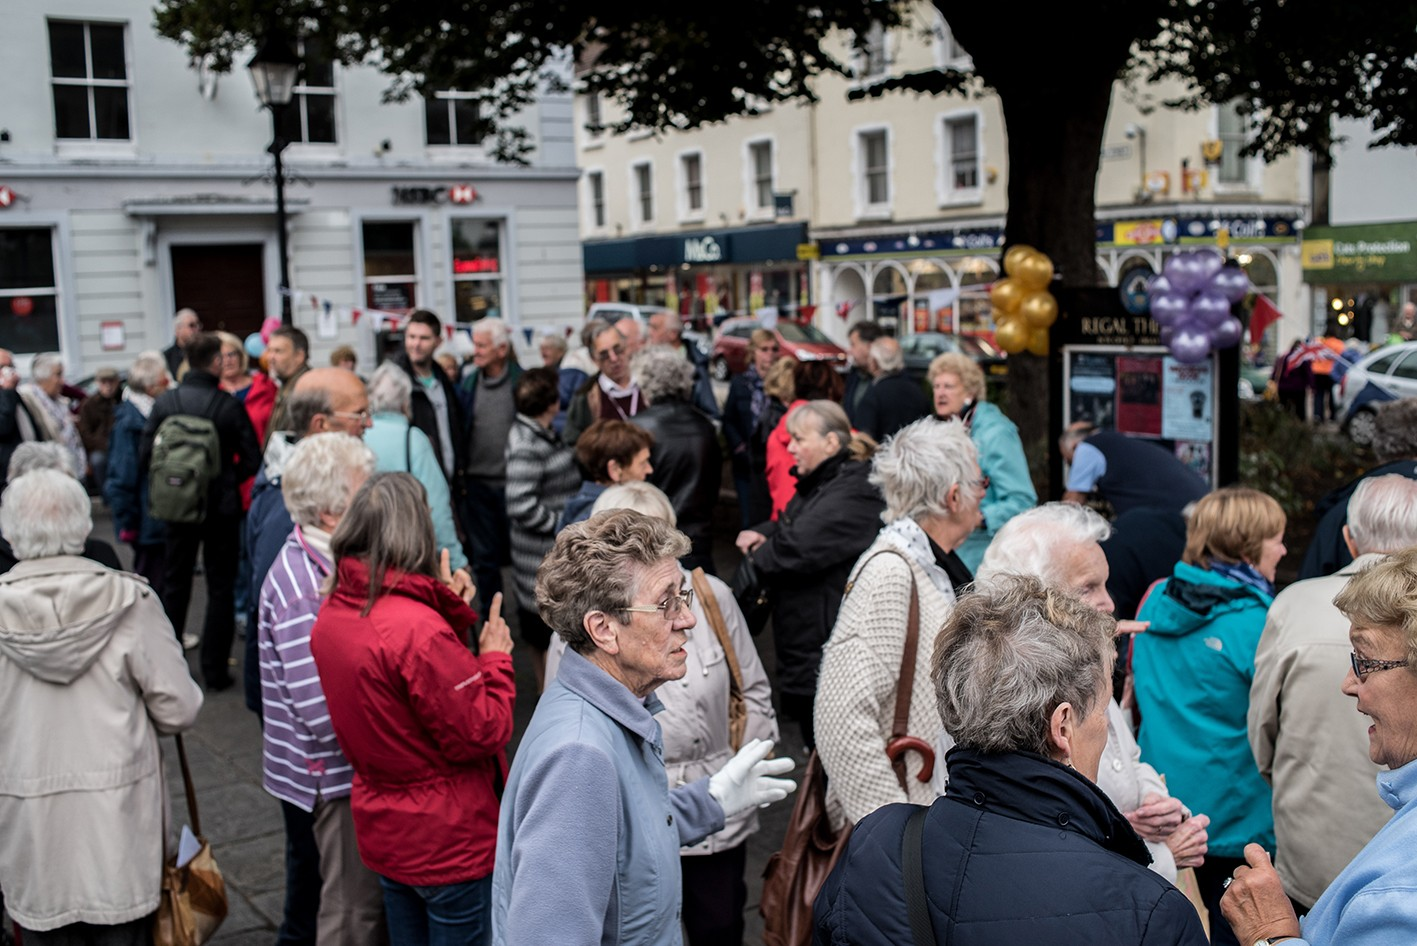 Pensioners crowded into town square, with balloons